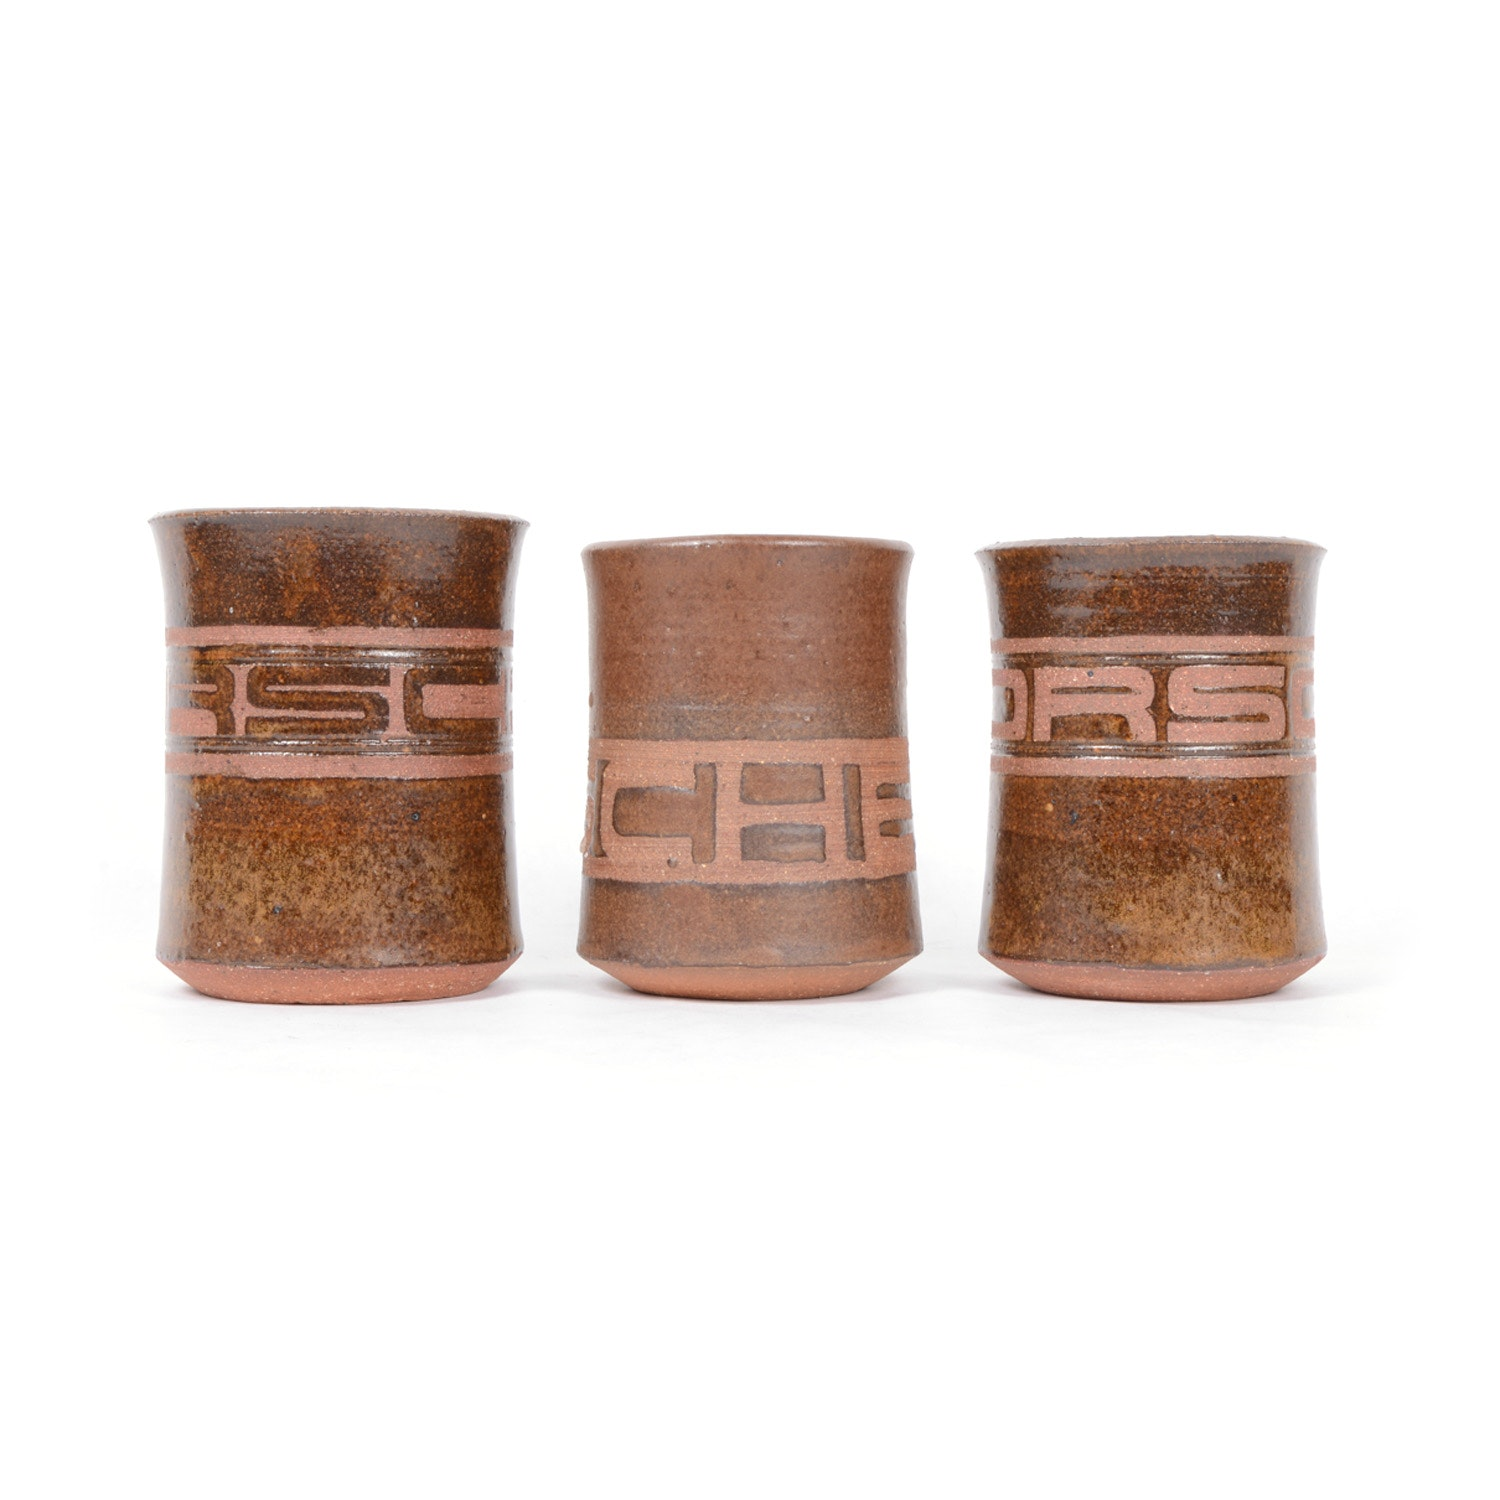 Collection of Hand-Crafted Stoneware Porsche Cups